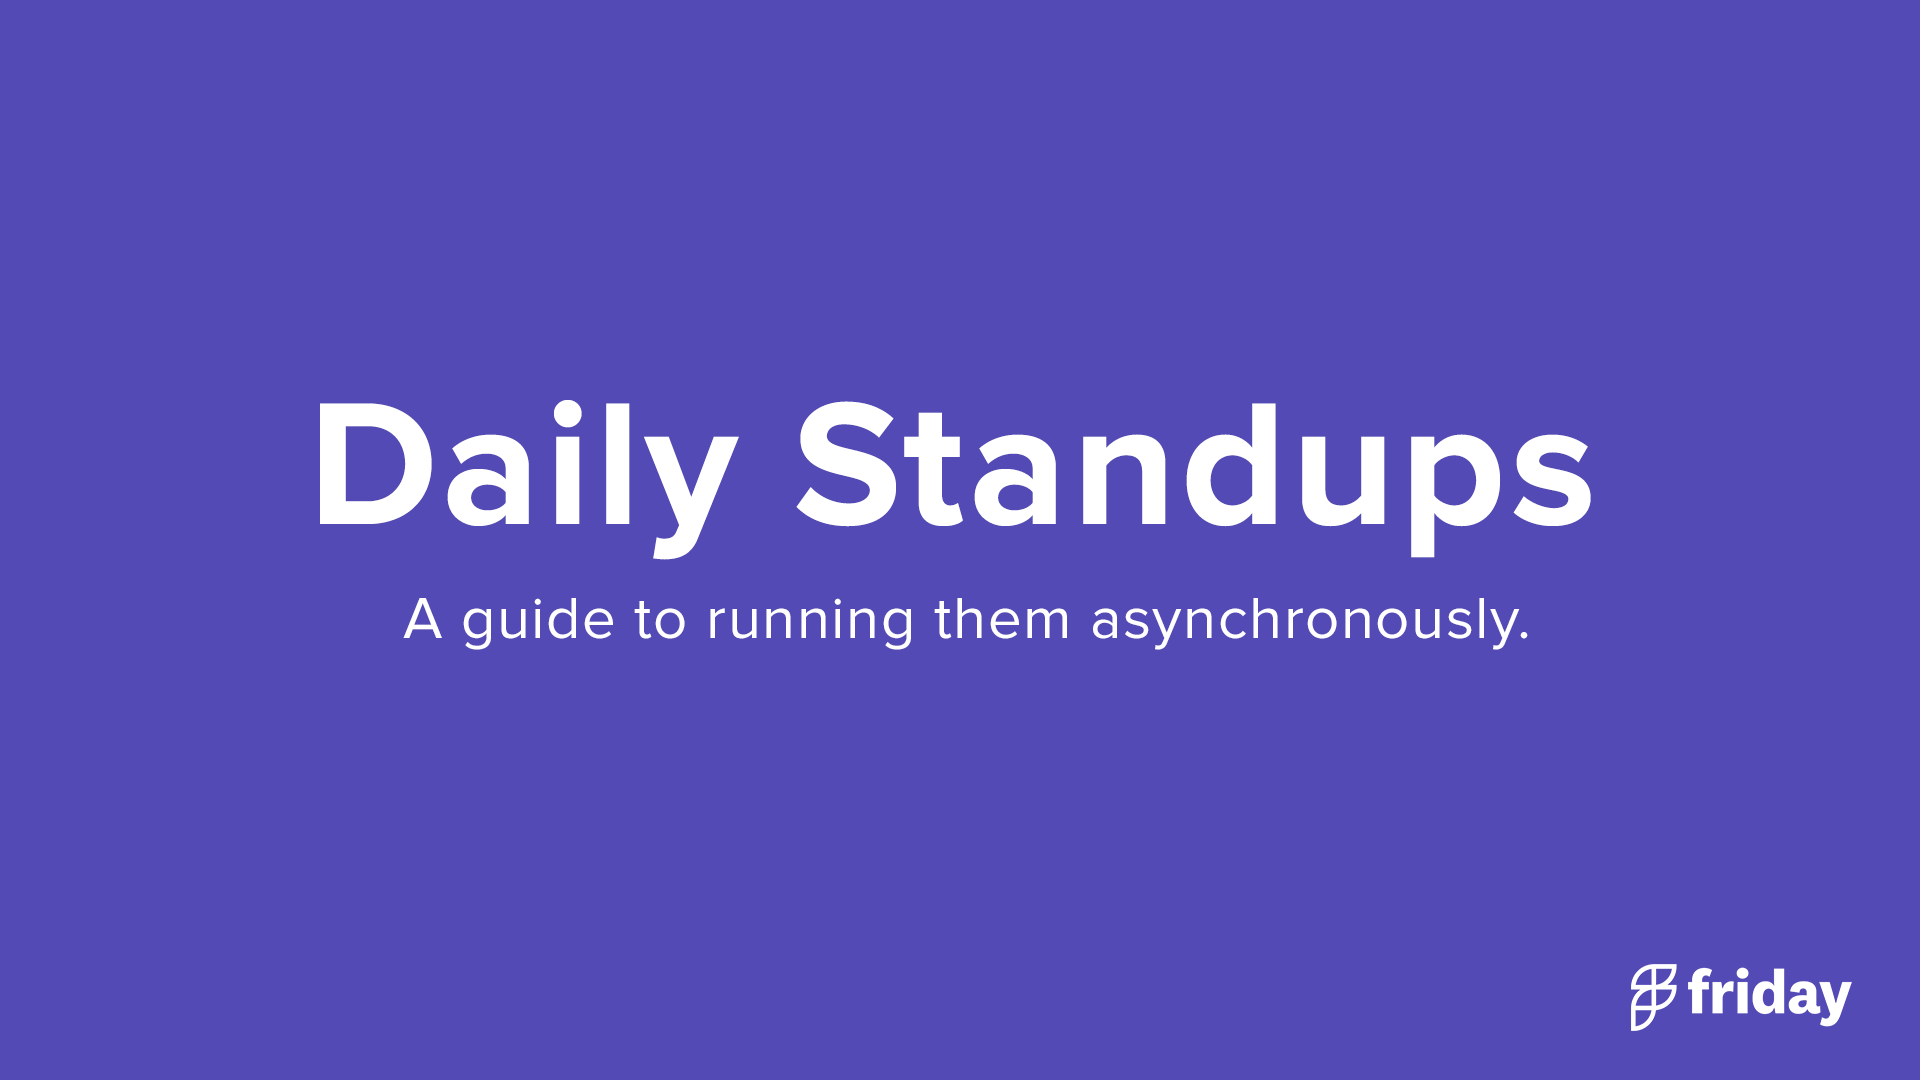 Asynchronous daily standups